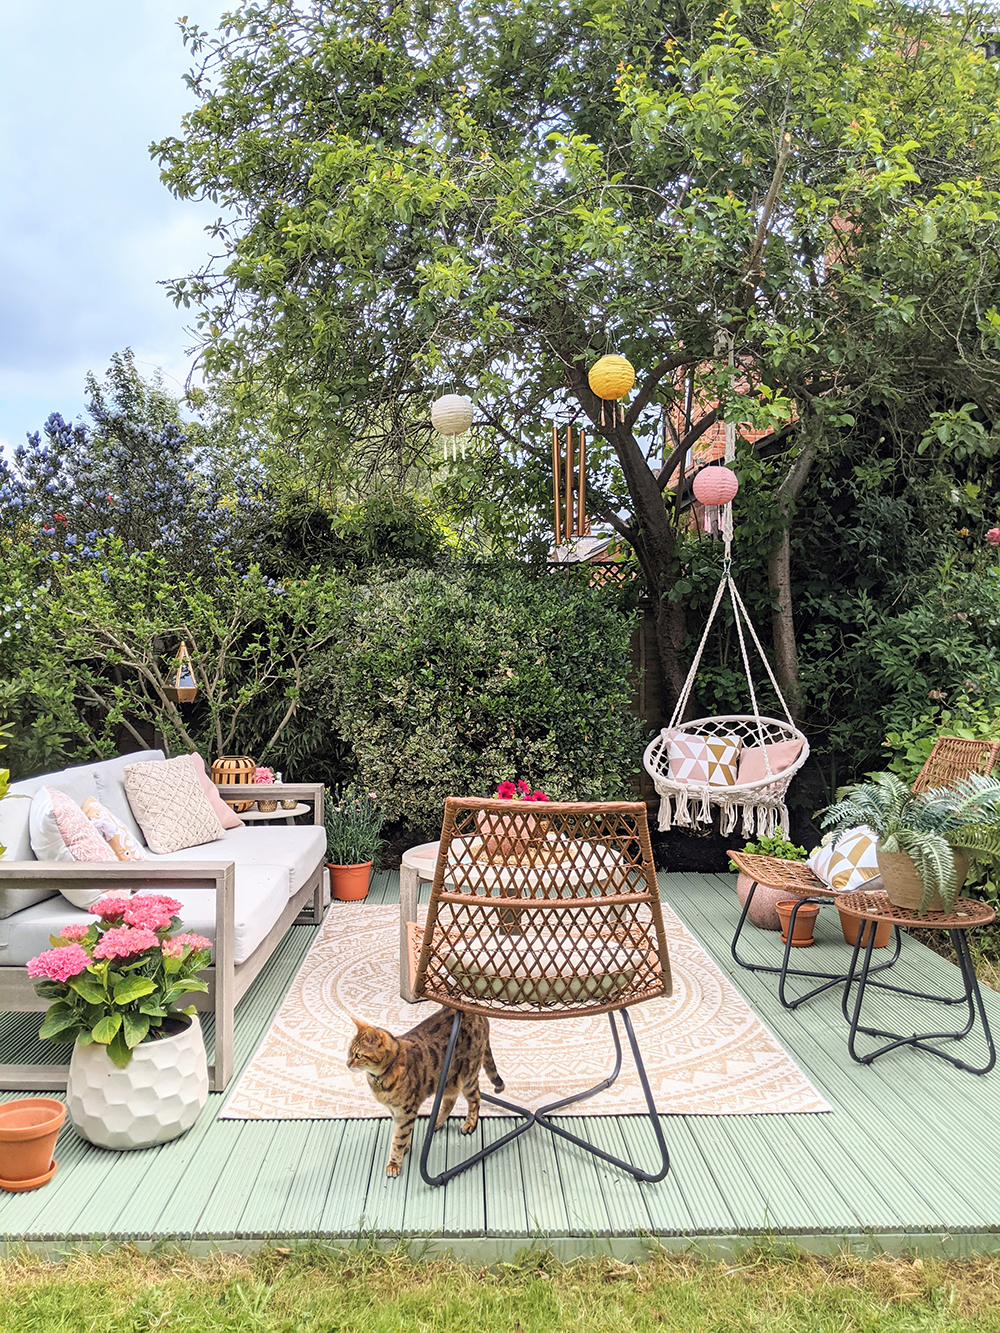 Decked area with hanging chair styled in pink and green garden